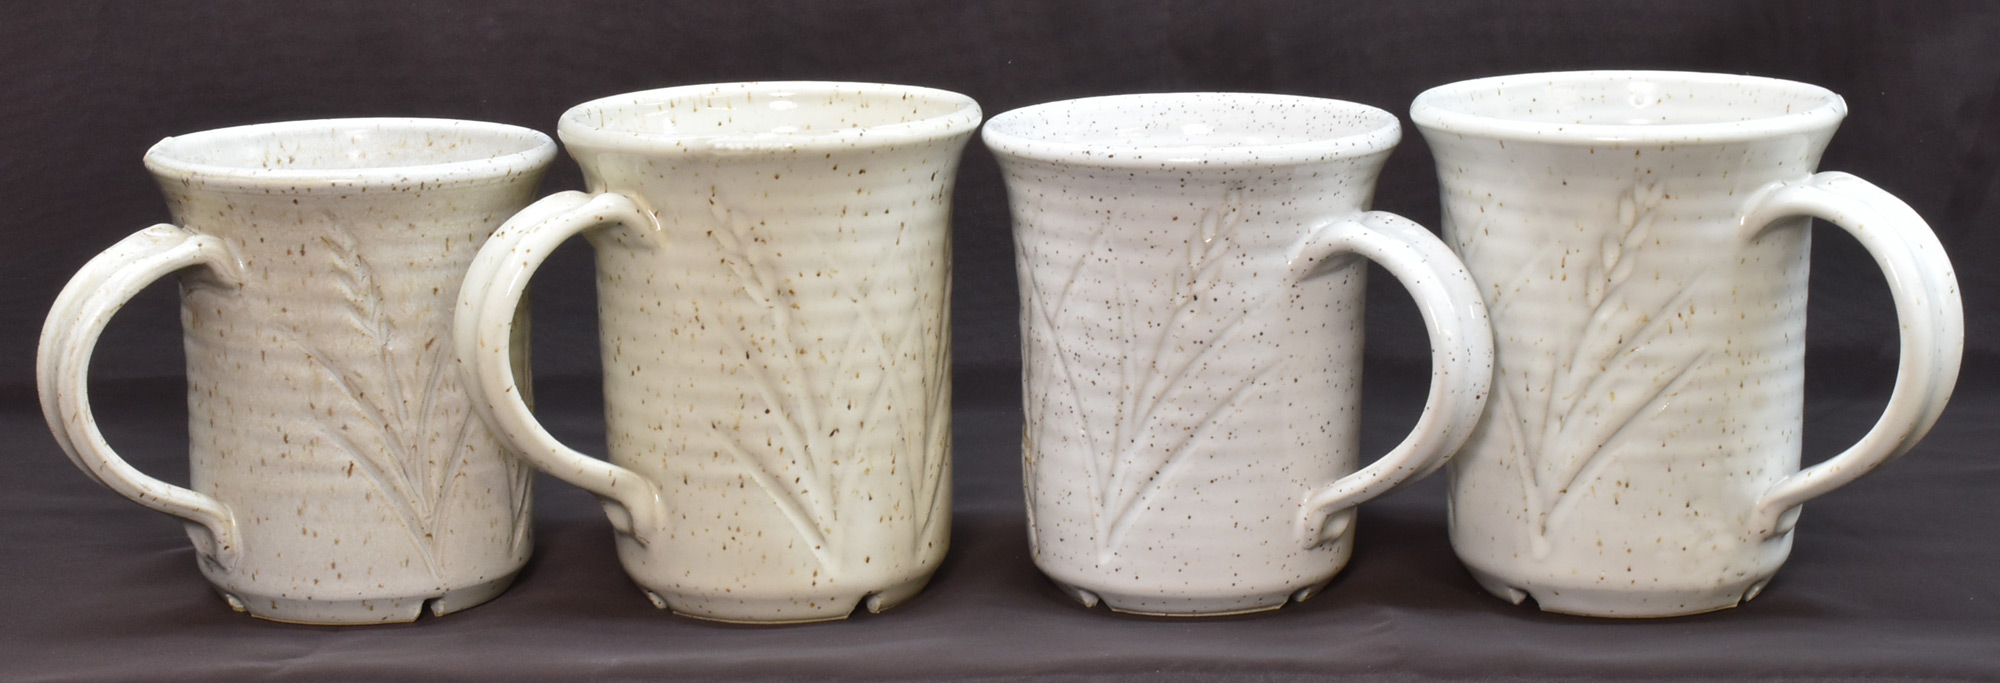 Emulating a speckled reduction fired stoneware in oxidation